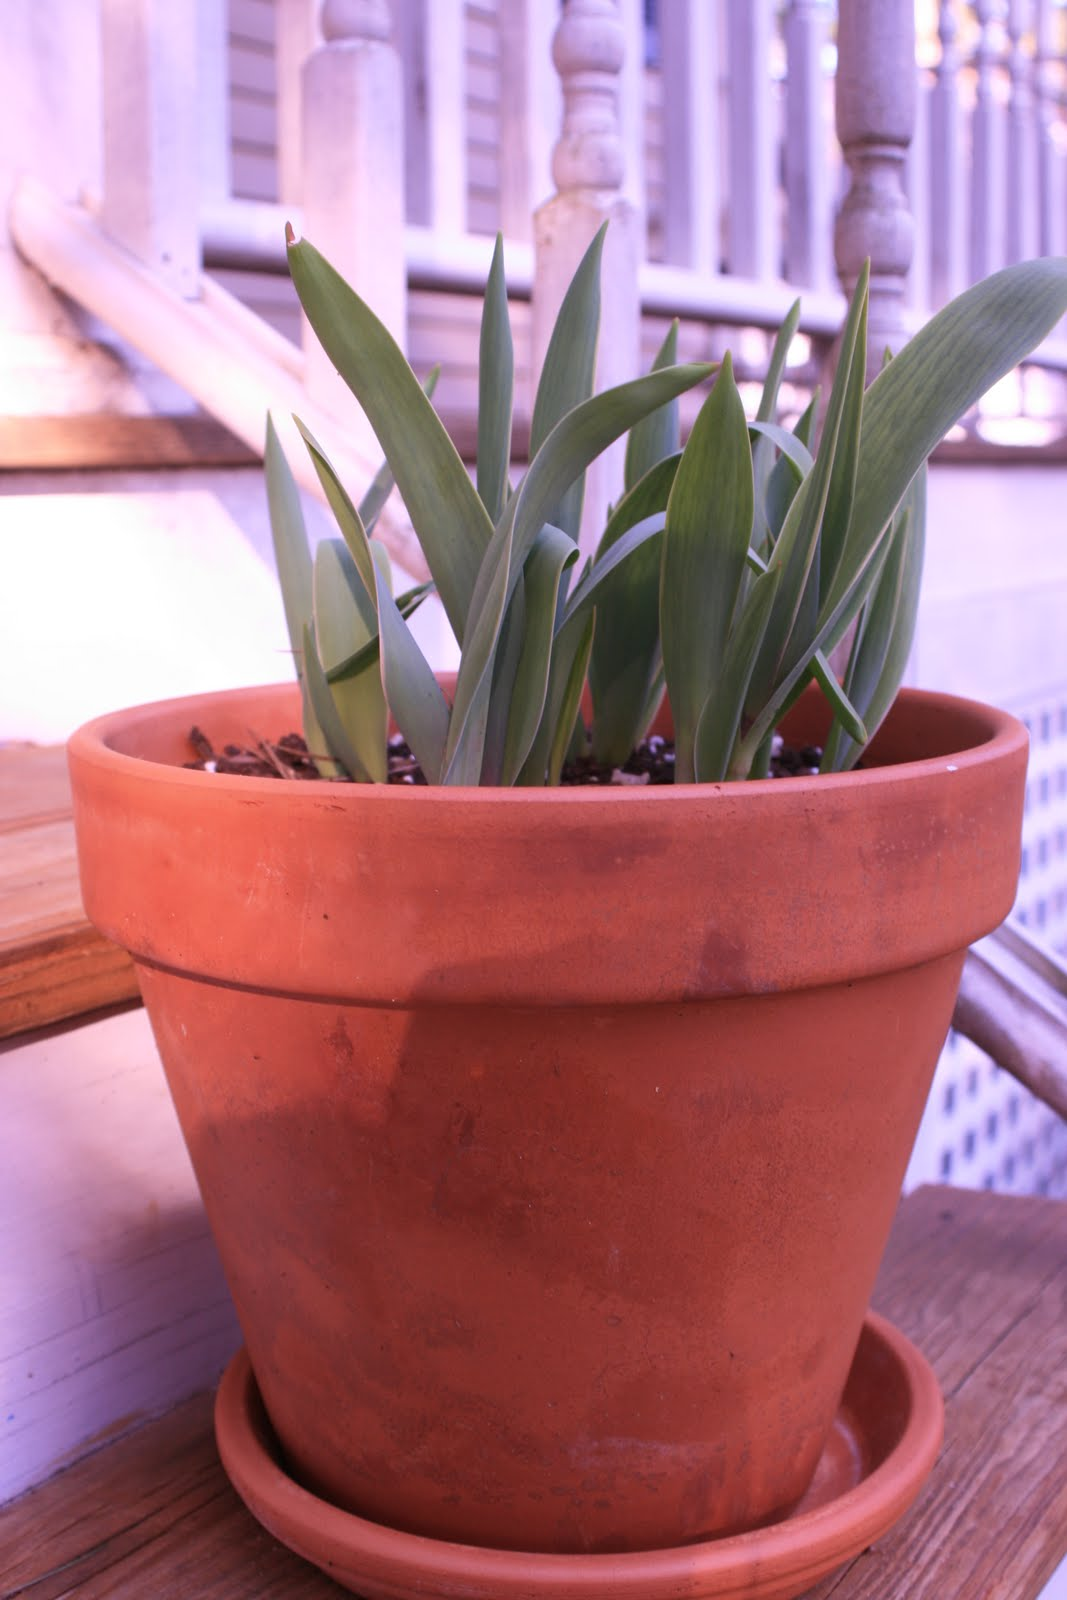 Sign of Spring #2...nearly budding tulips that my ever so thoughtful ...